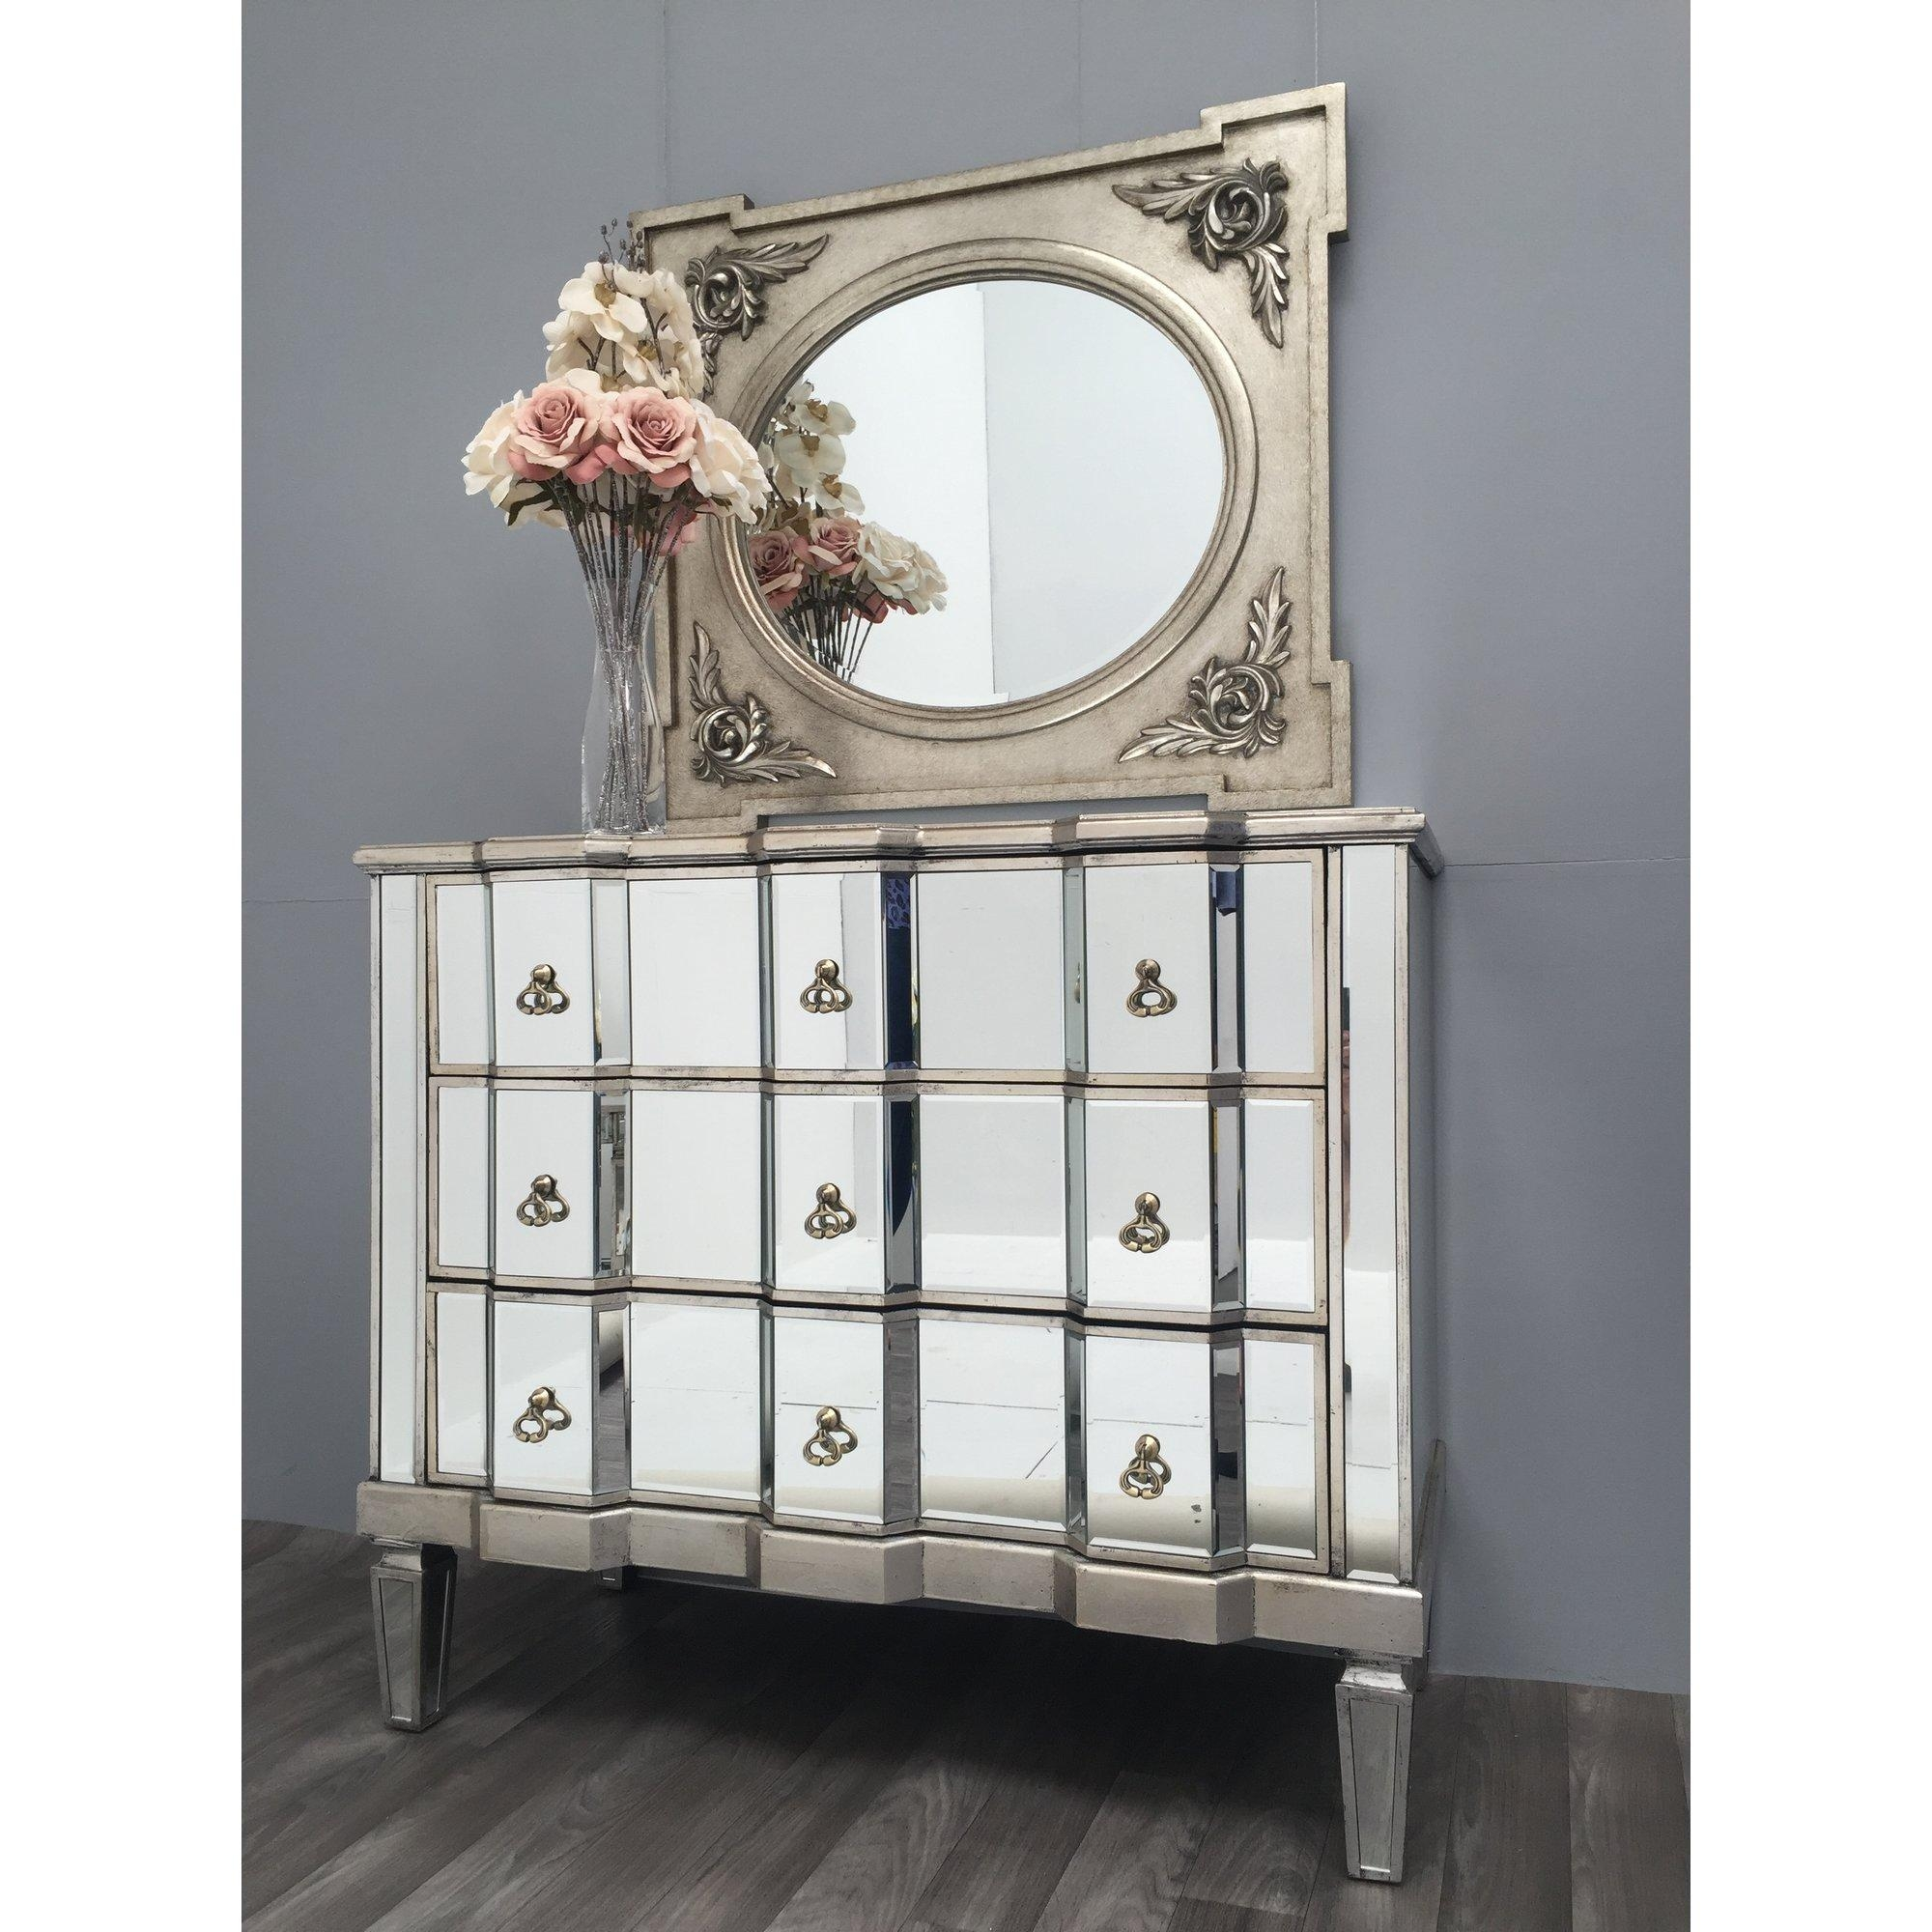 Bedroom Furniture Sets : Mirrored Side Chest Tall Mirrored Inside Antique Mirrored Furniture (Image 5 of 20)